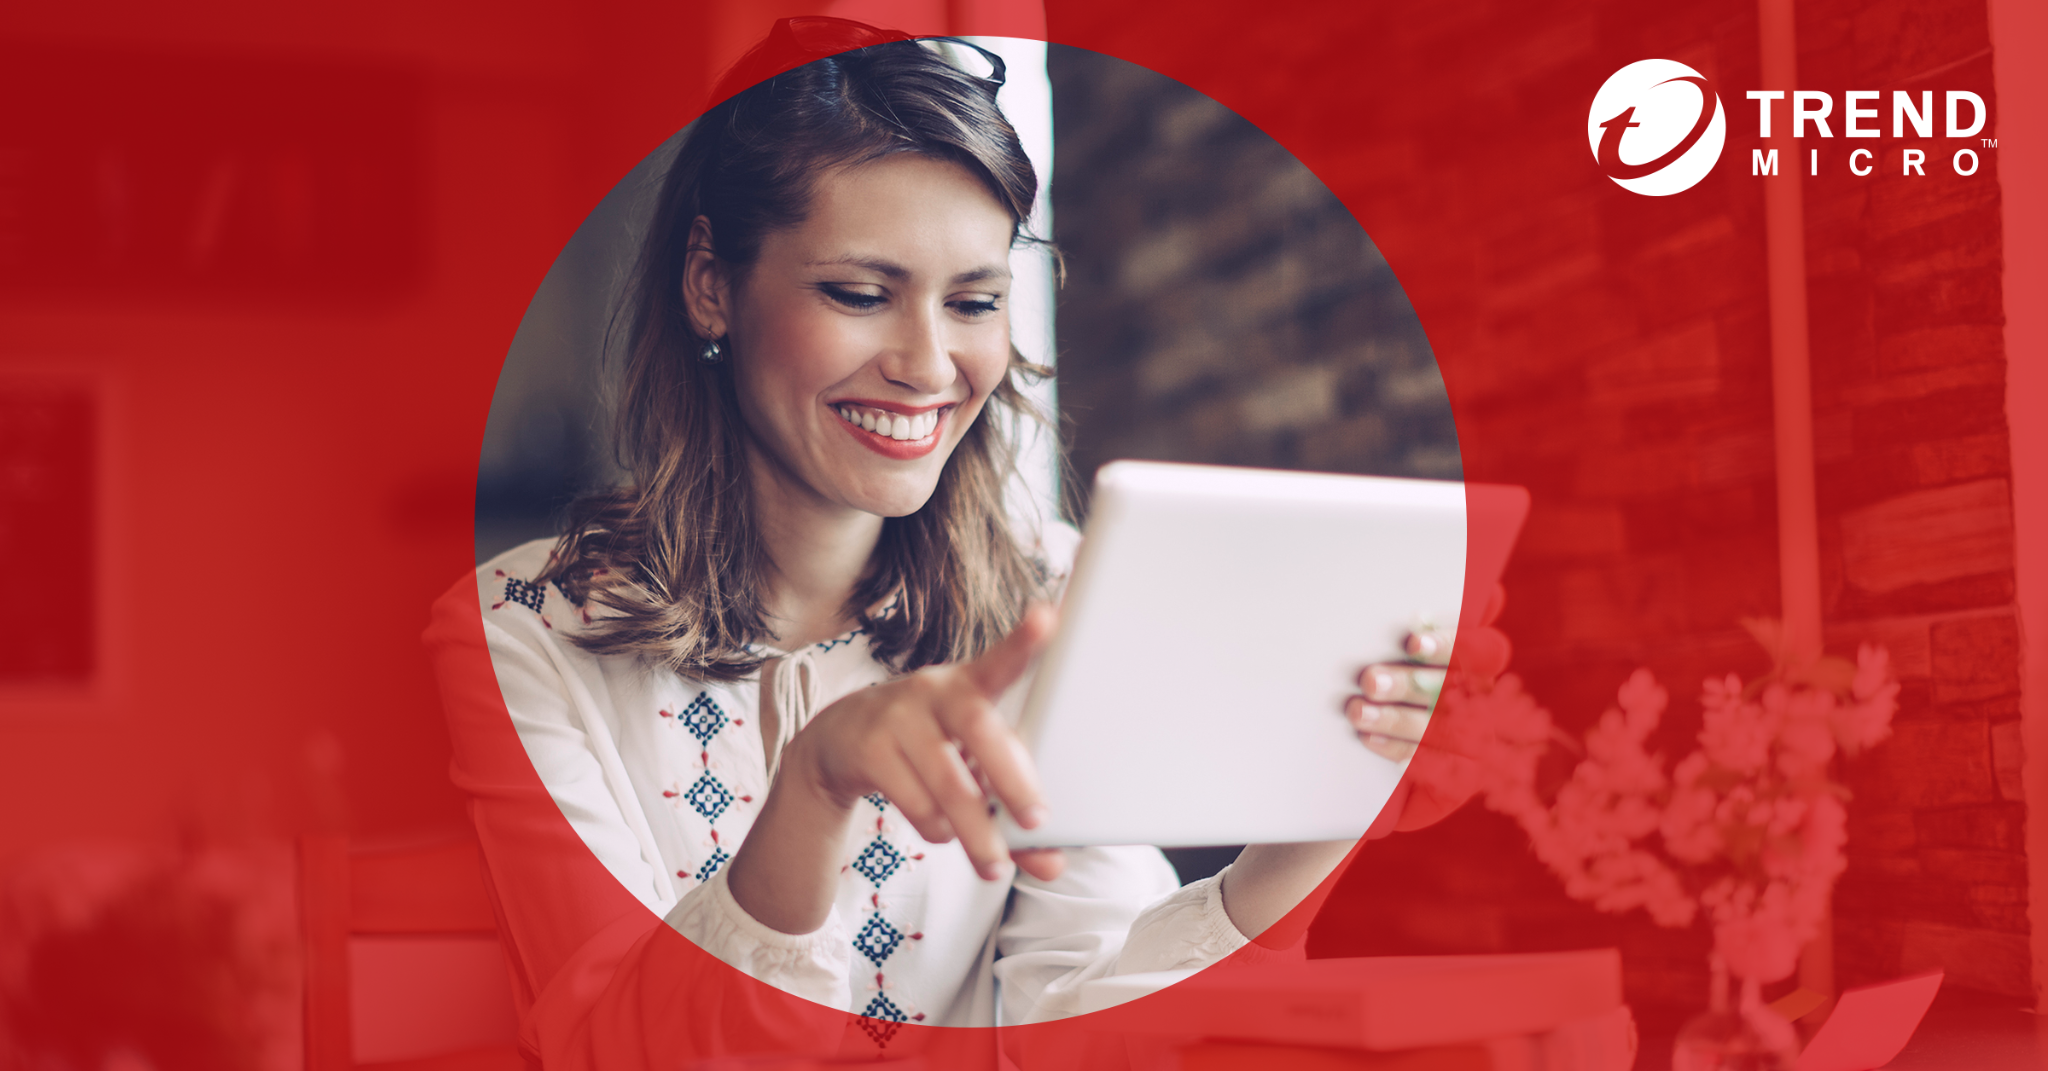 [New Update] Trend Micro Security 17.7 now available!